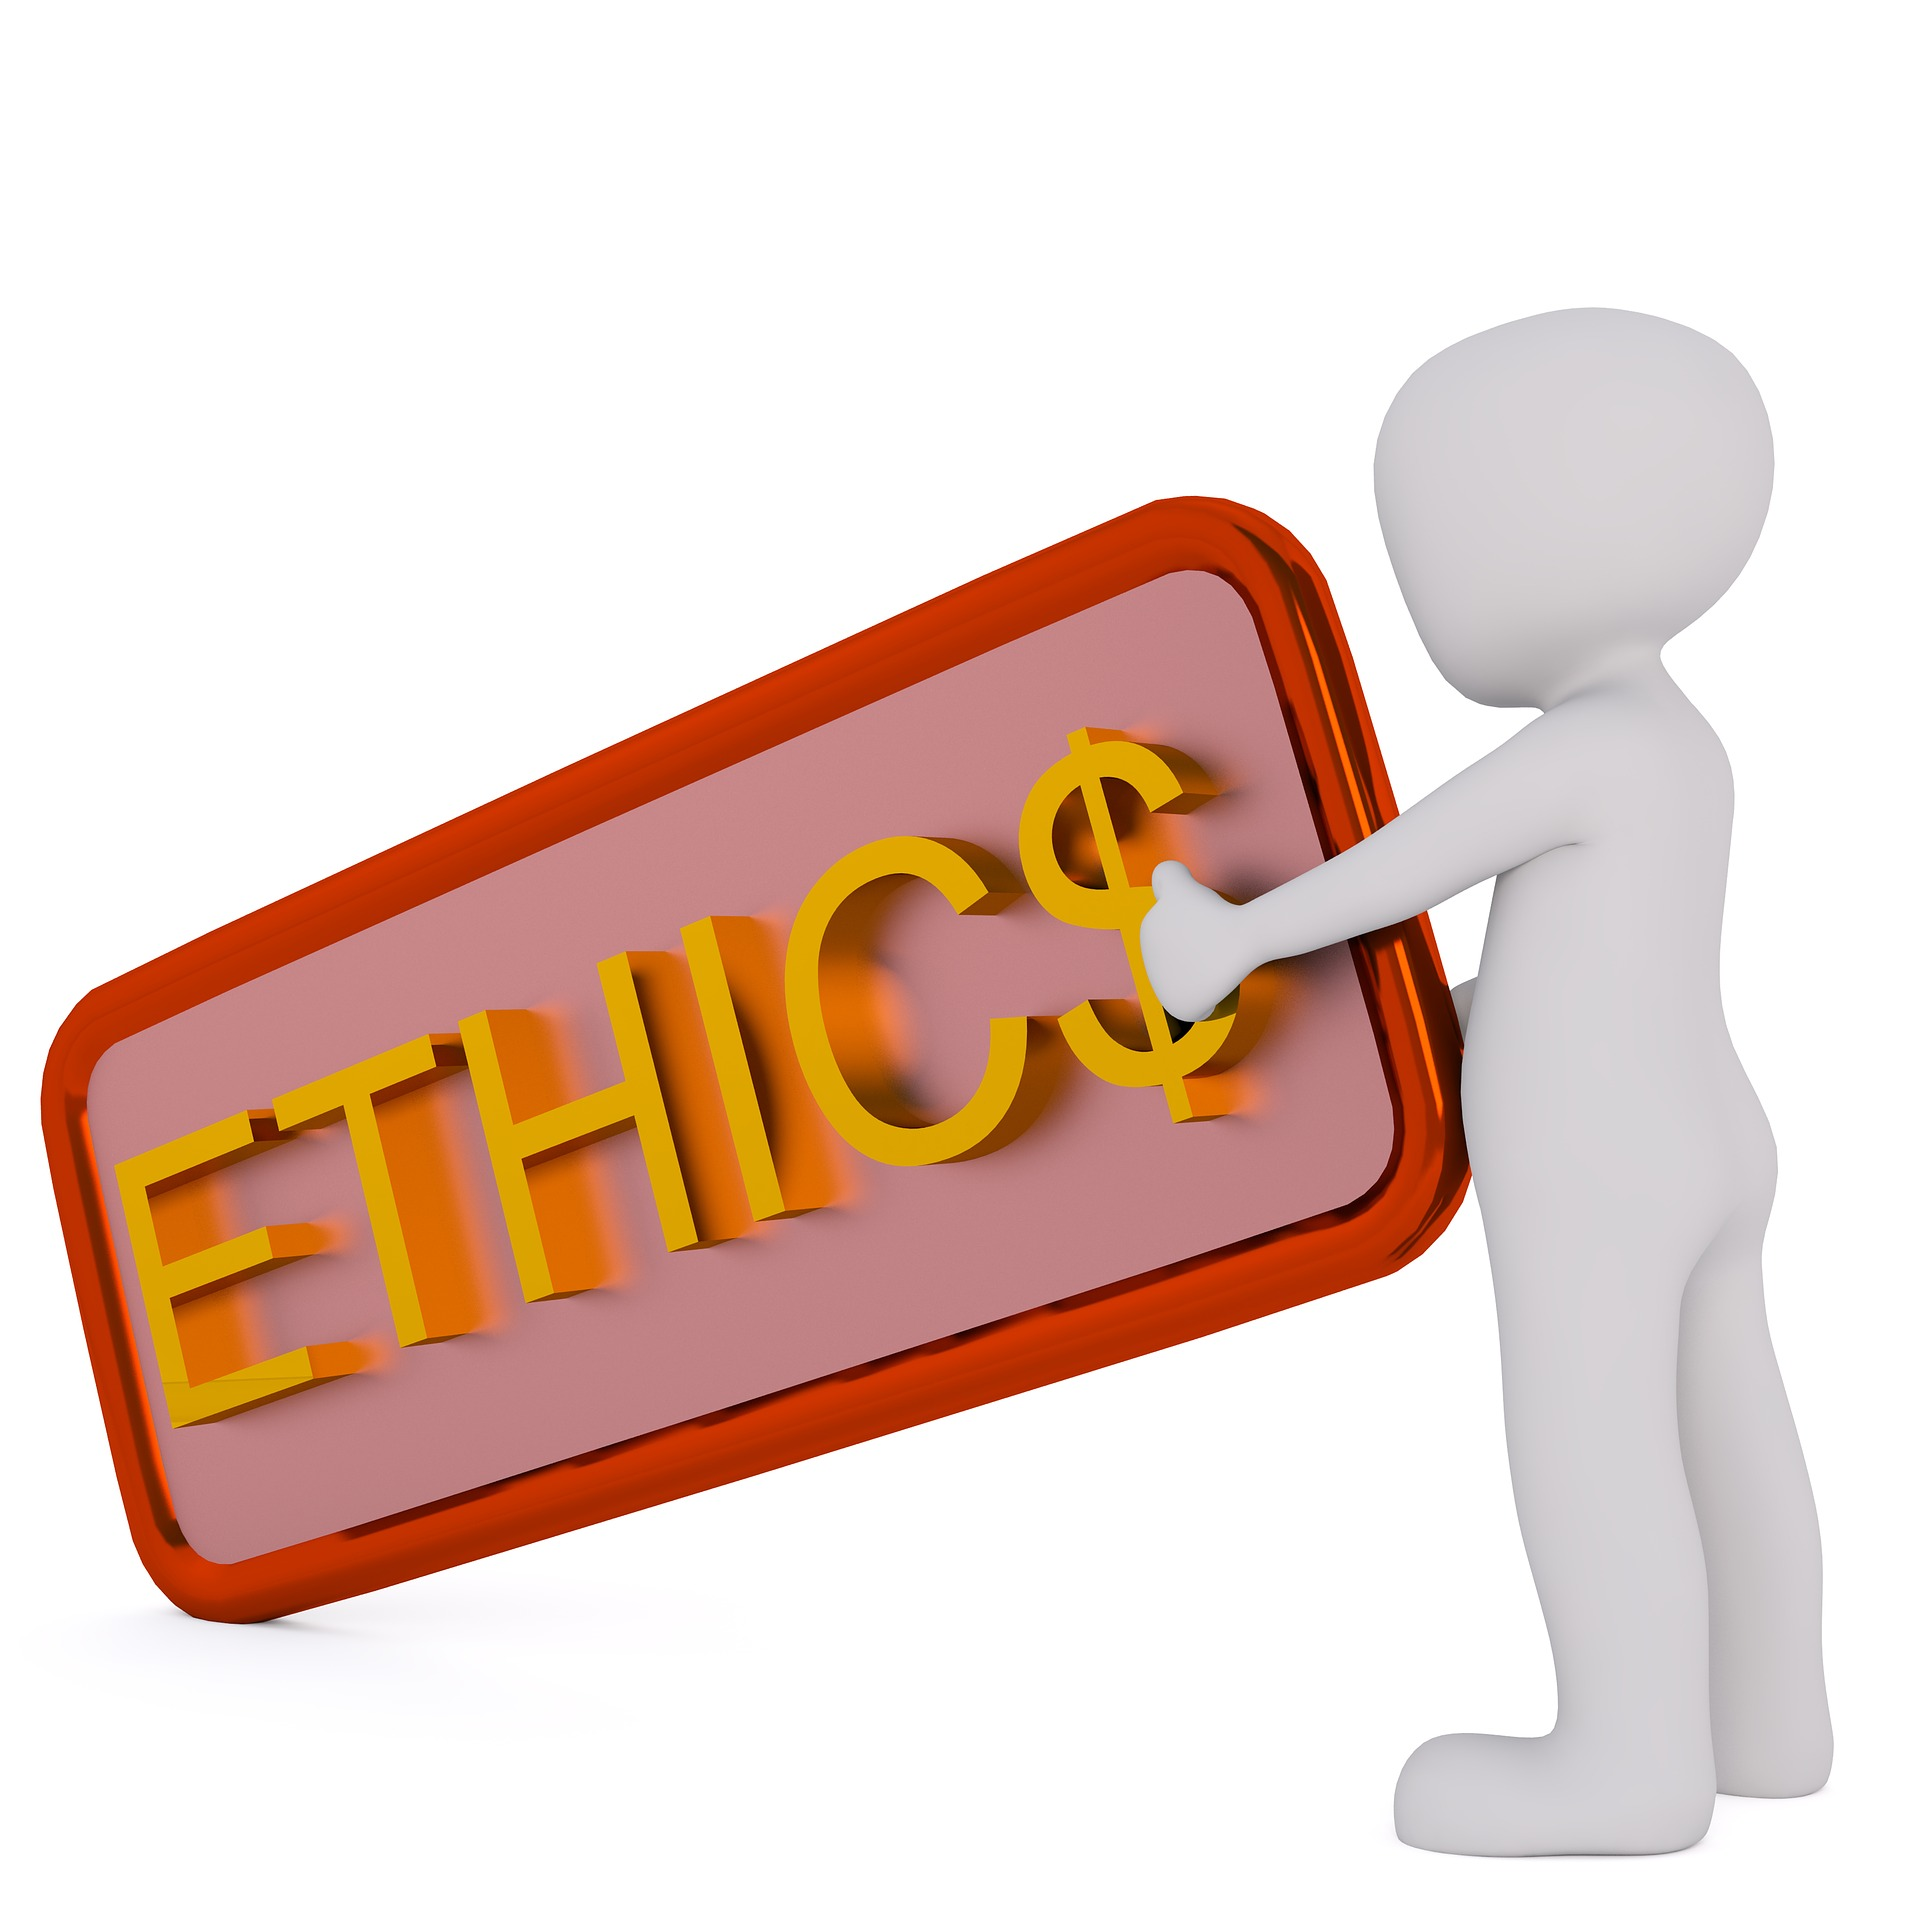 A picture of an ethics signboard with a dollar sign for an S.